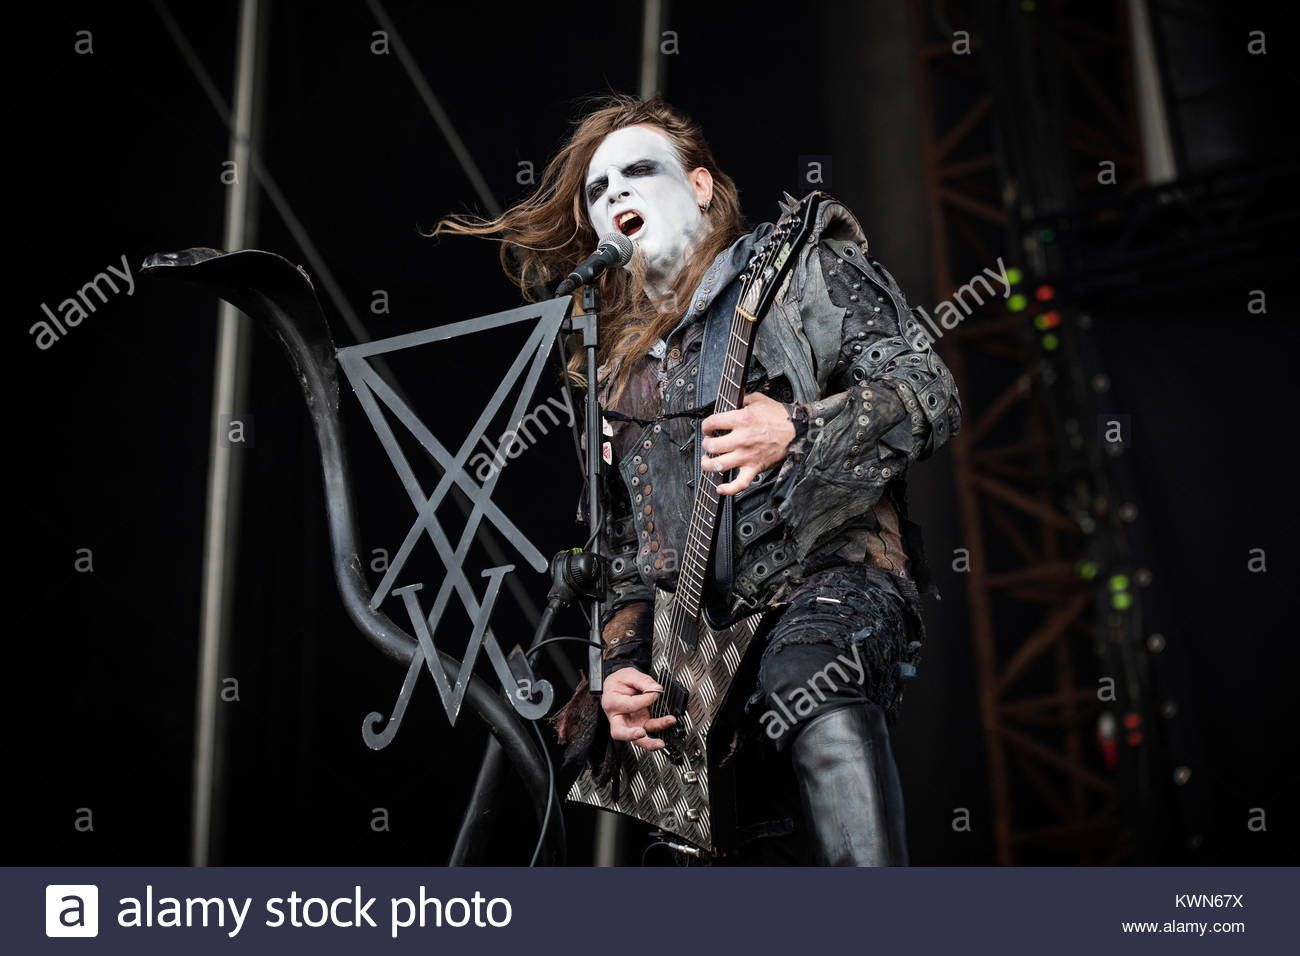 Download This Stock Image The Polish Death Metal Band Behemoth Performs A Live Concert At The Scandinavian Heavy Metal Fe Death Metal Live Concert Metal Bands